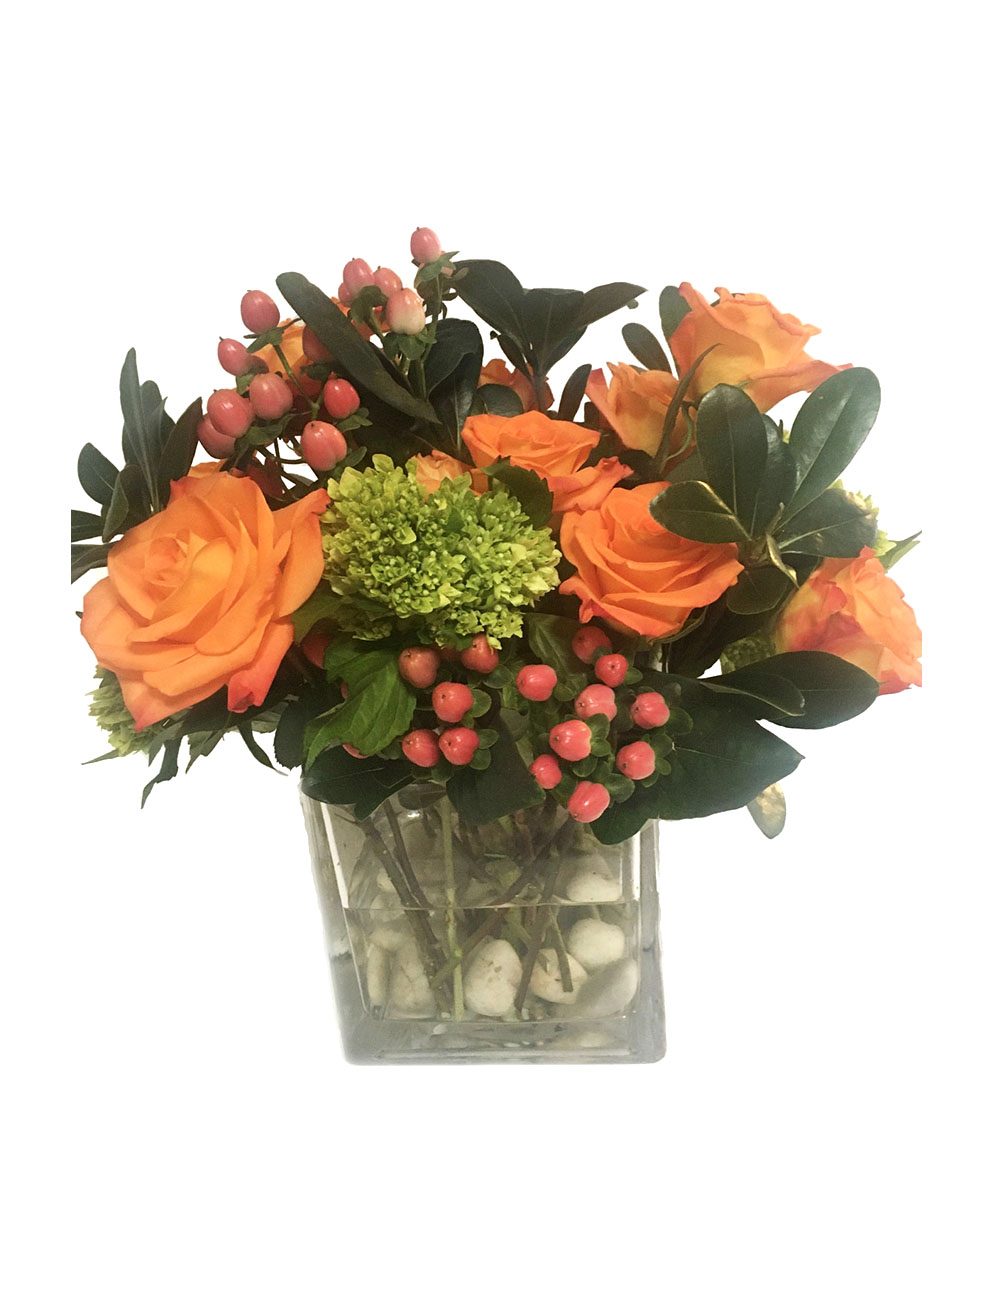 Ravishing Beauty Fresh Floral Arrangement